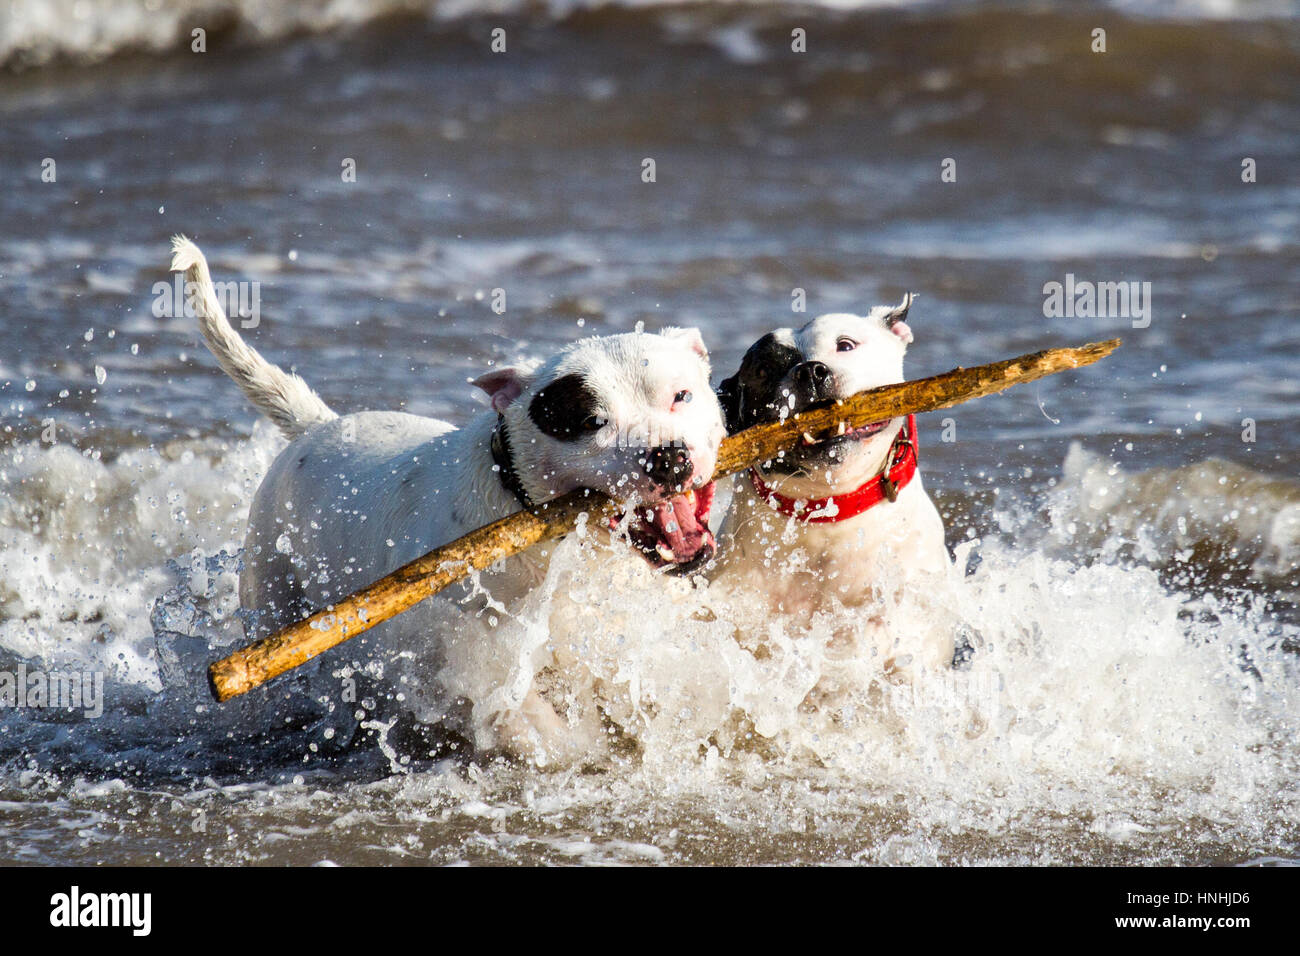 Spring Weather, New Brighton, Cheshire, UK.  13th Feb 2017.  Staffies 'Blue', 'Cloud' & 'Smog' - Stock Image